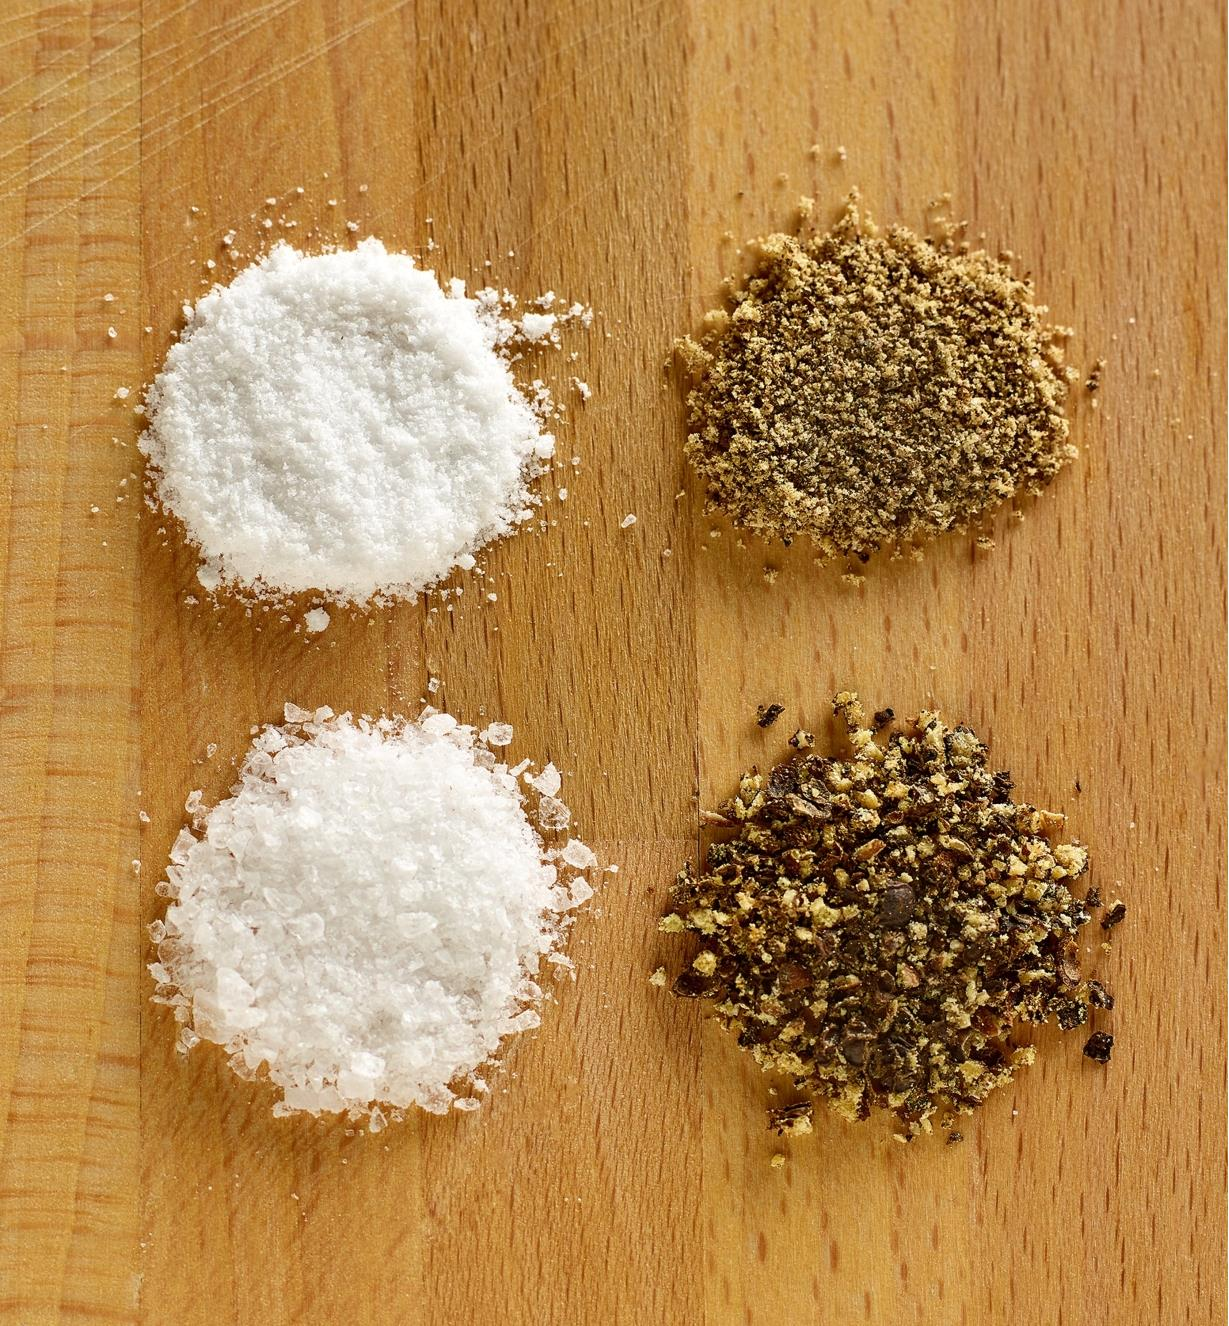 A close view of coarse- and fine-ground salt and pepper, showing the range of grind settings